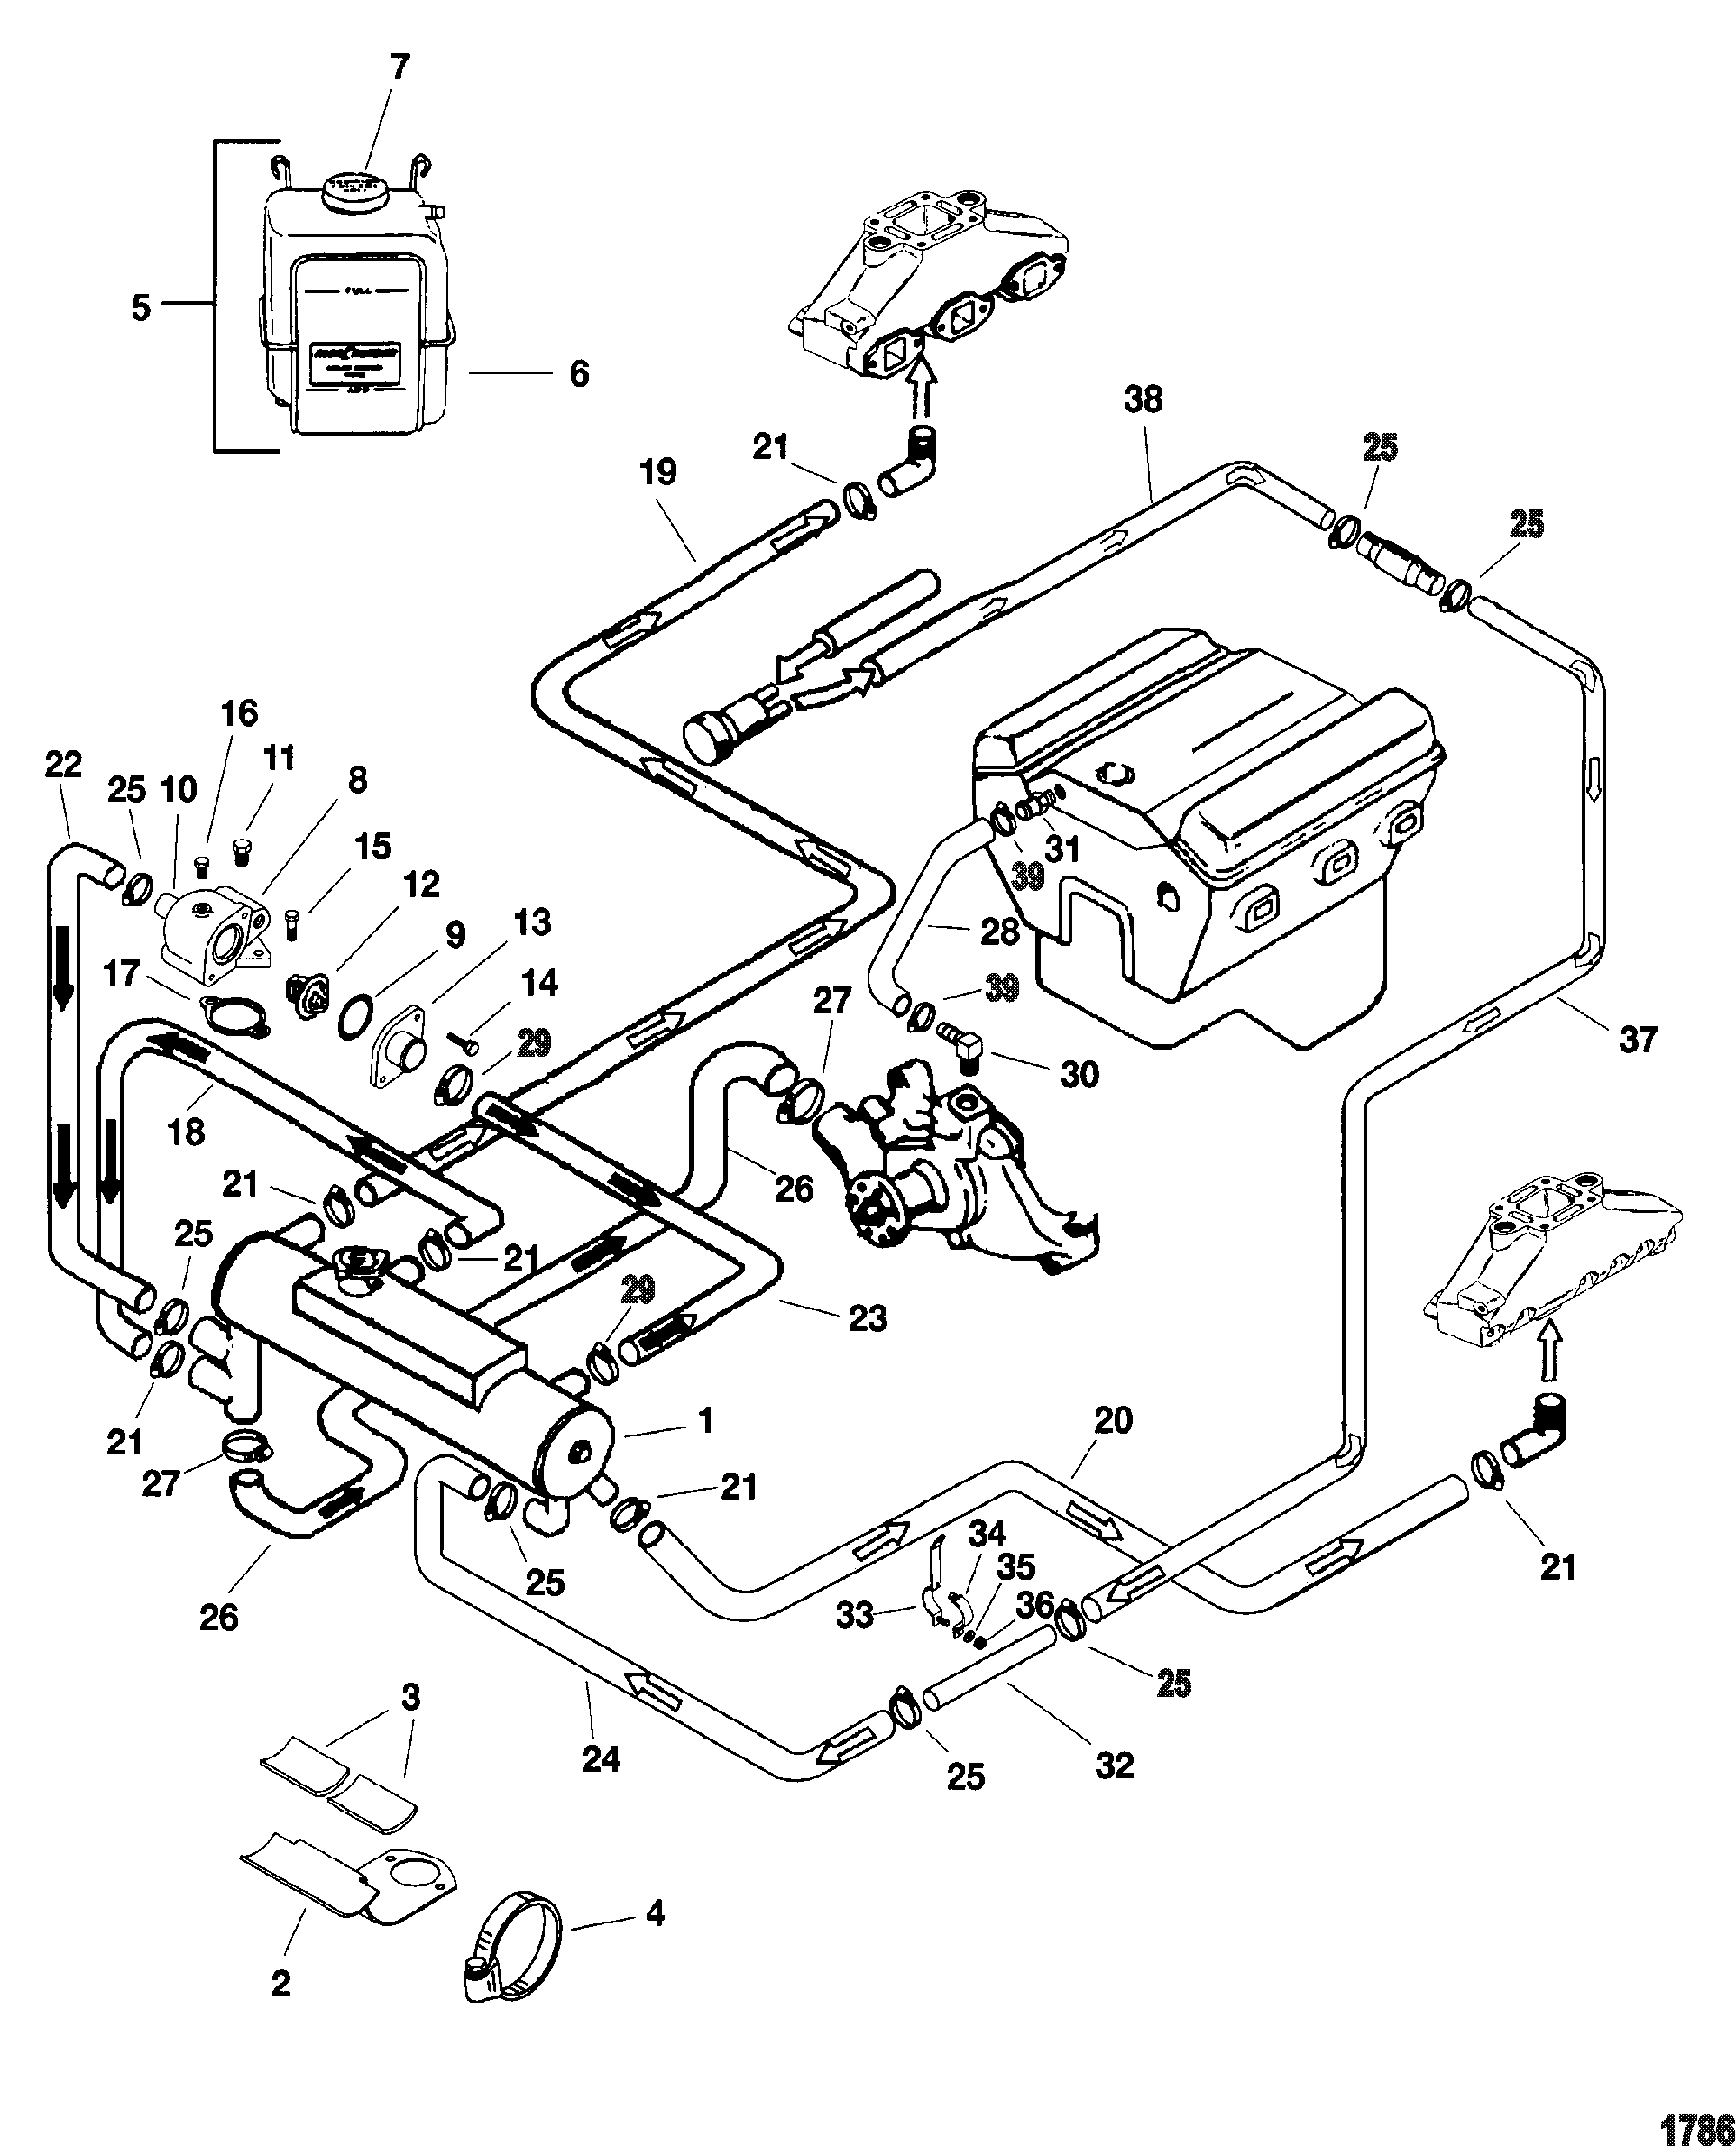 hight resolution of closed cooling system for mercruiser 4 3l efi alpha bravo 2001 chevy suburban parts diagram 2005 chevy suburban intake diagram